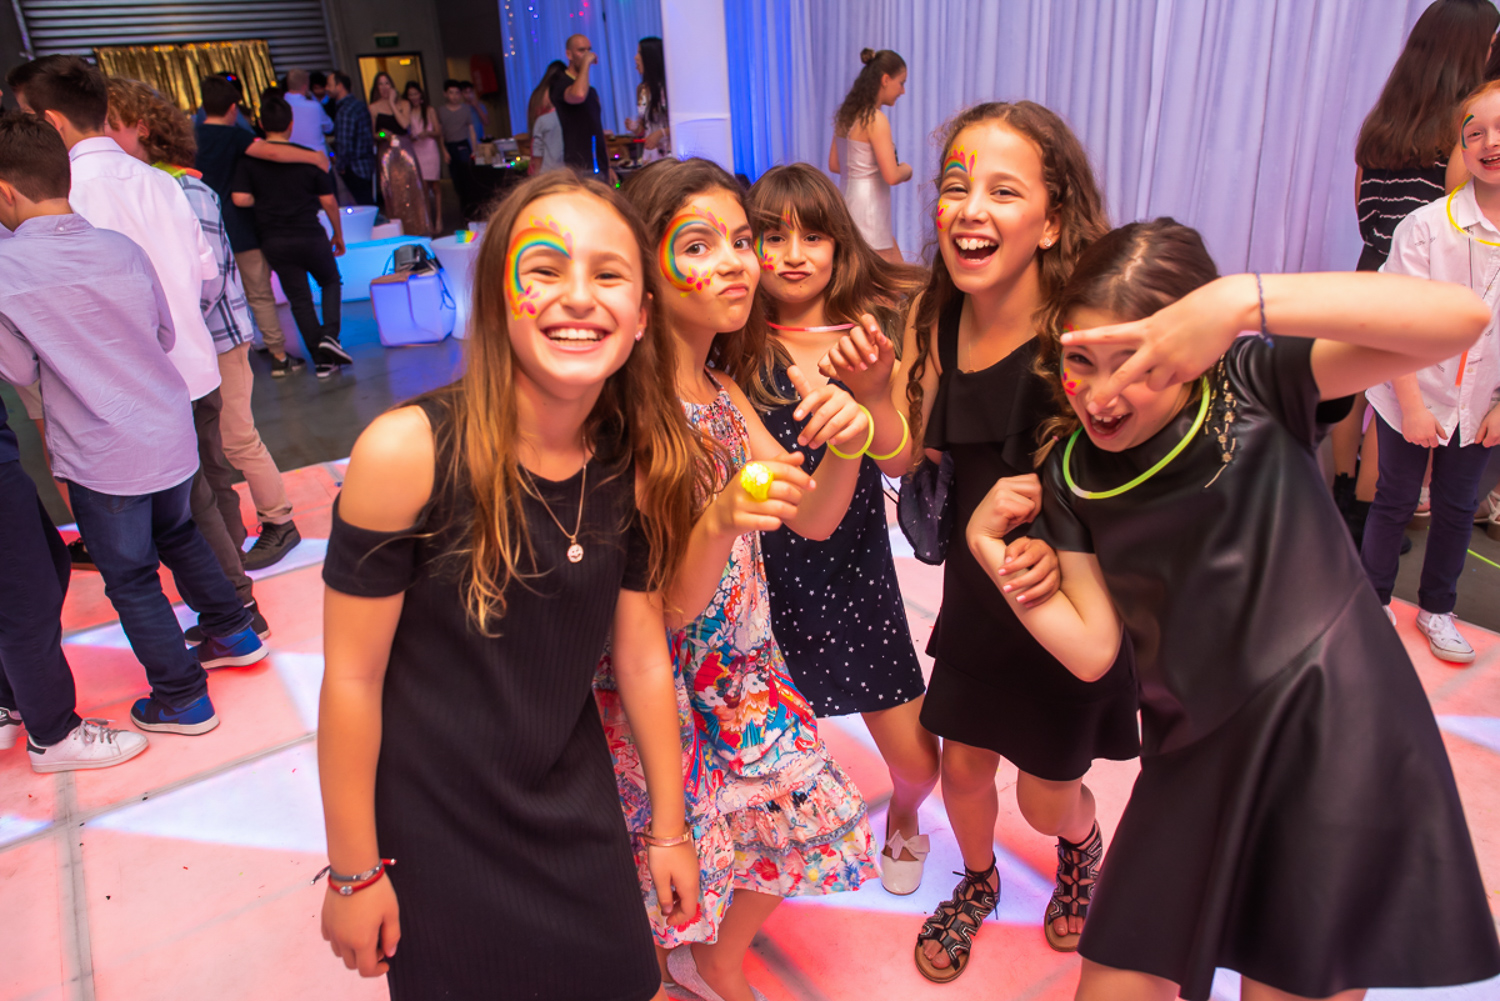 kids having fun on a hired glowing dance floor during jenna's bat mitzvah